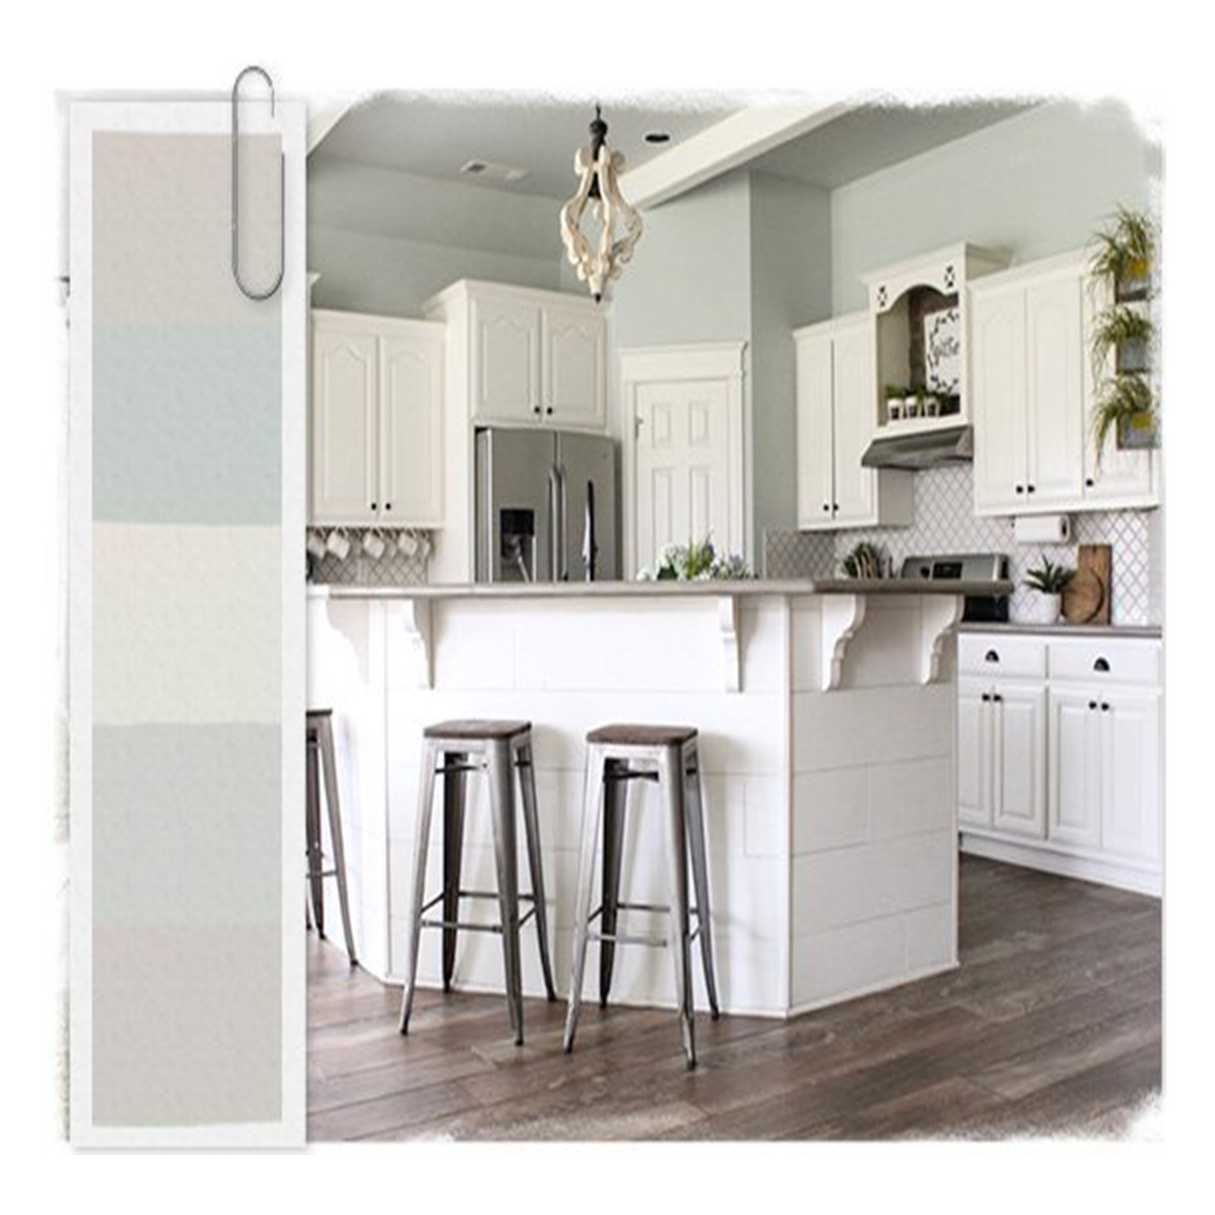 The Most Popular Farmhouse Paint Colors of 2020